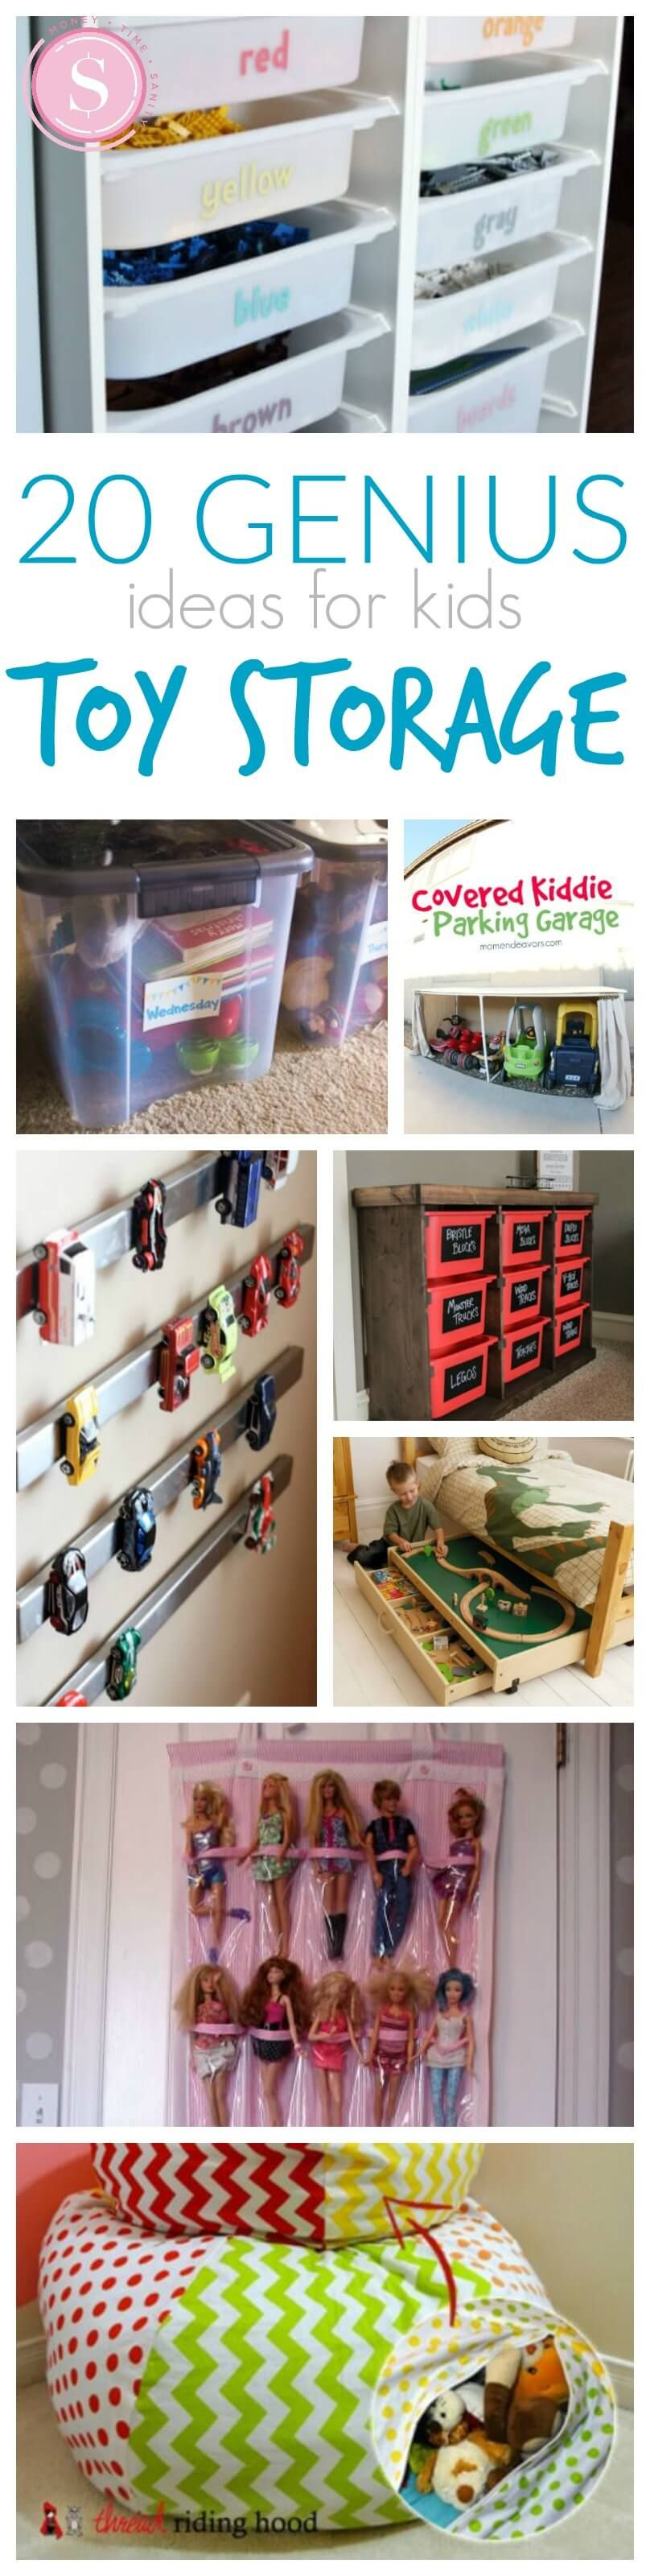 7 1 Toy Storage Ideas 2019 Diy Plans In A Small Space Kid Toy Storage Kids Storage Organization Kids